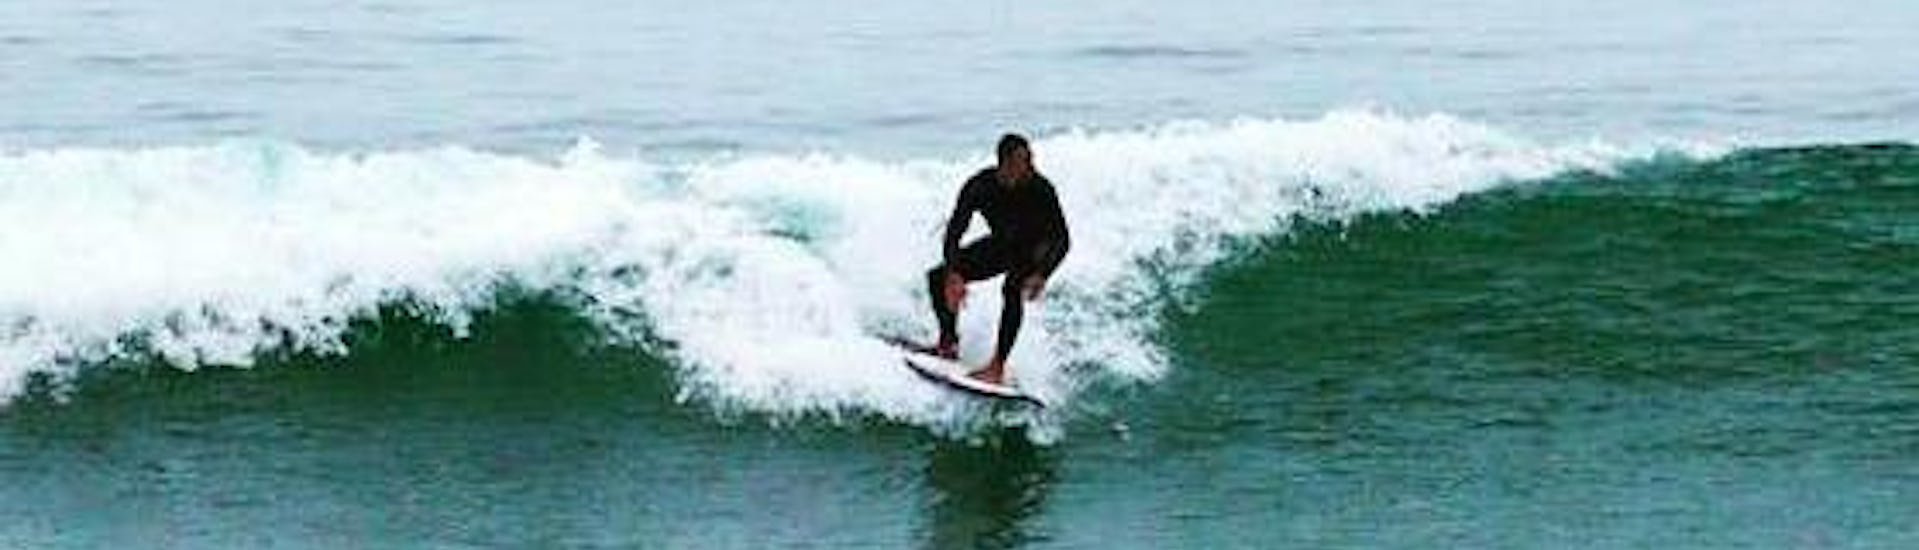 Surfing Lessons for Kids & Adults - Beginner